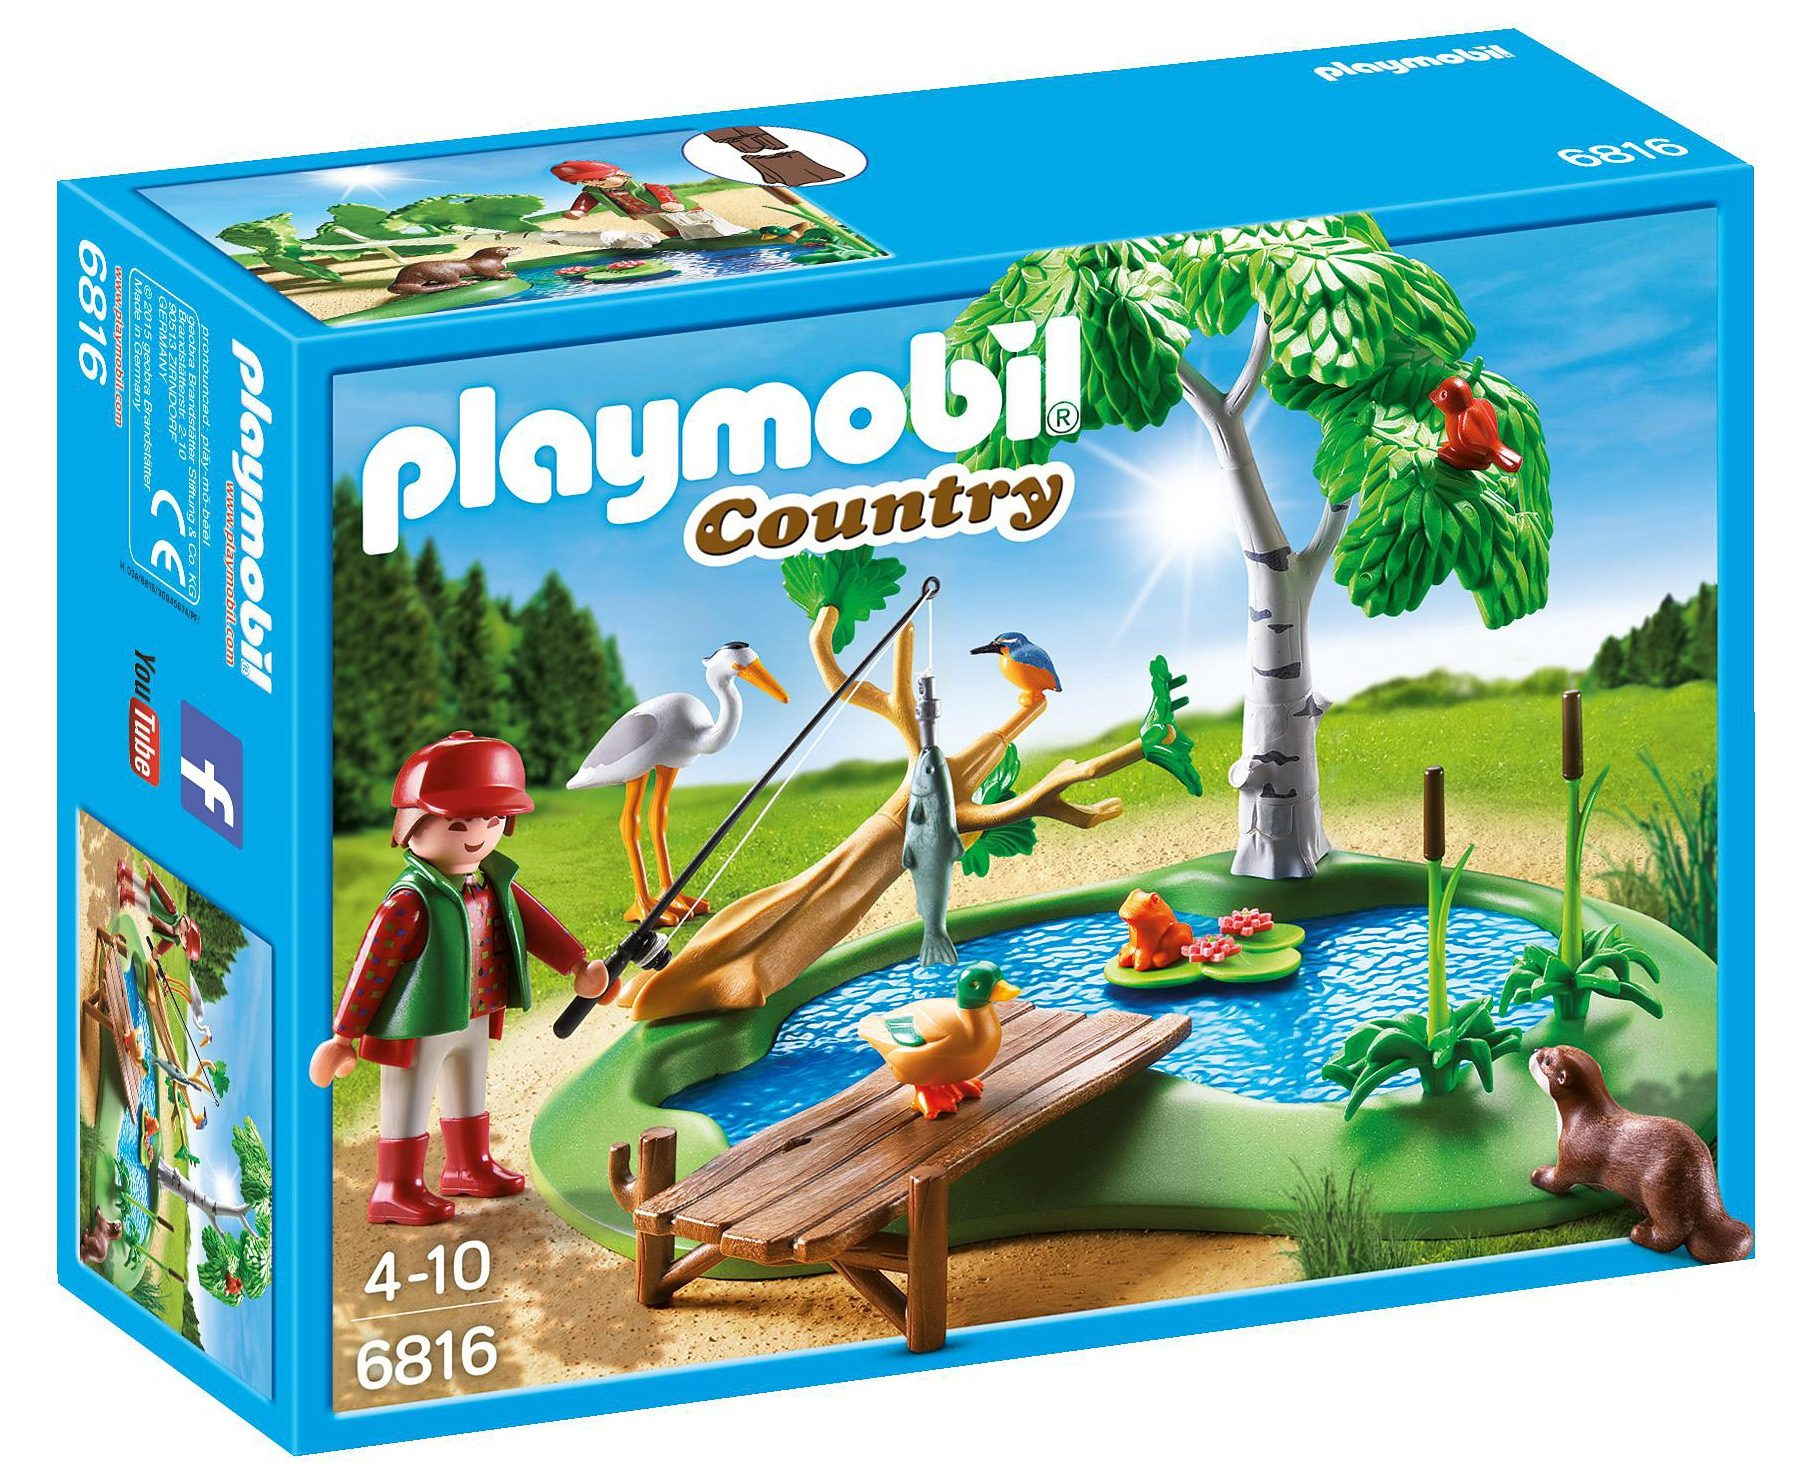 Playmobil® Angelteich (6816), »Country«